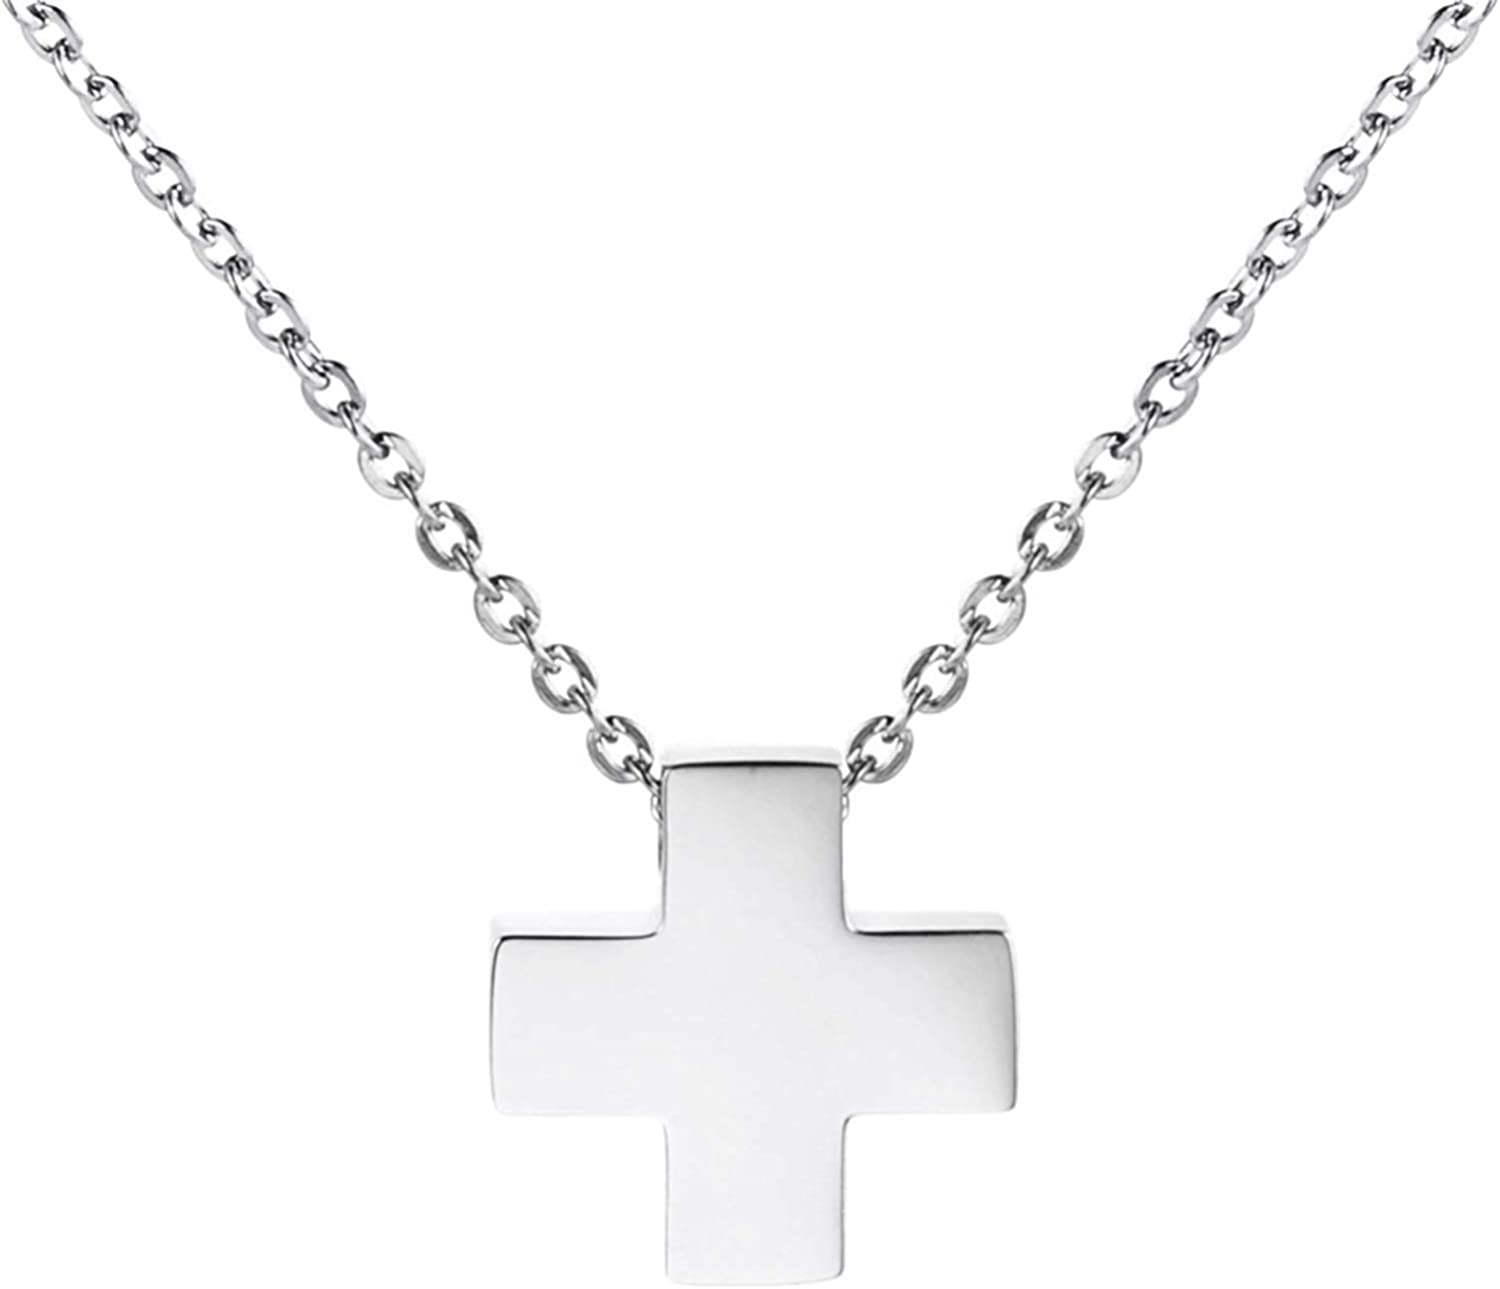 HAMANY Mens Classic Cross Stainless Steel Pendant Necklace Chain with a 44cm+4cm Stainless Steel Necklace and velvert Bag